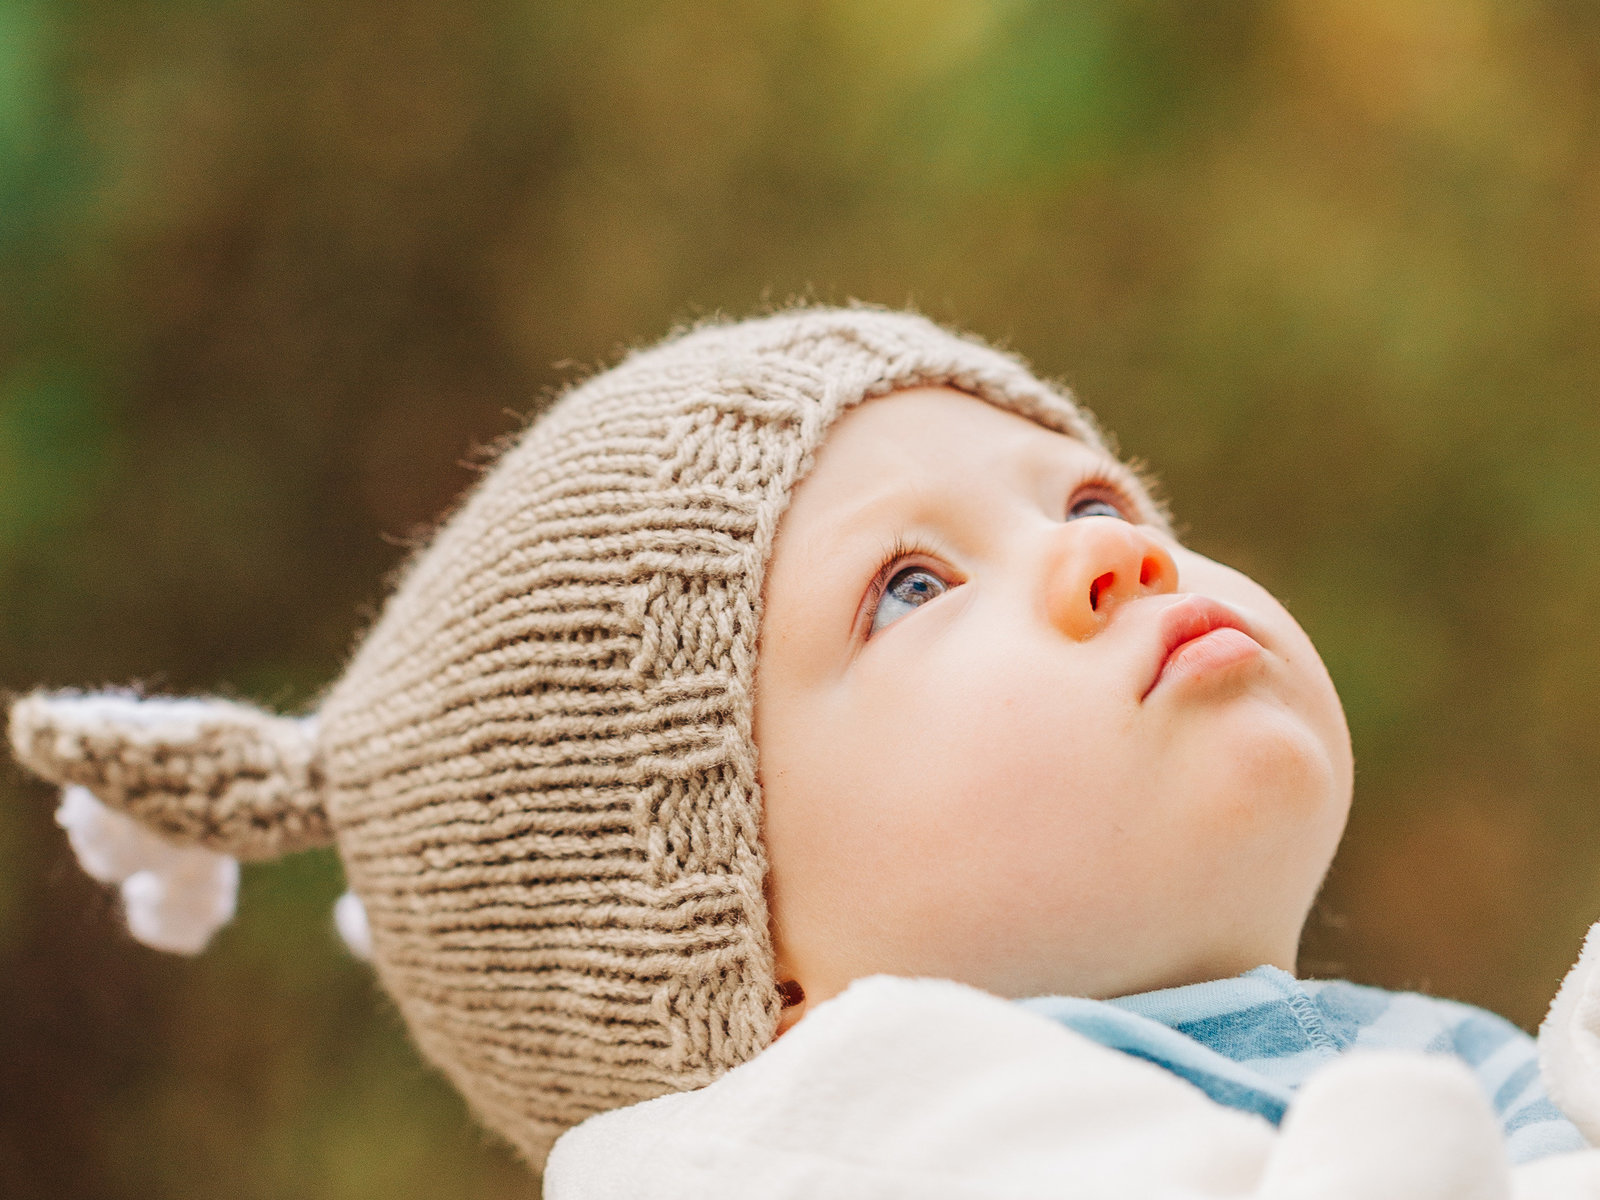 Baby with blue eyes in a knit cap looks up at the sky